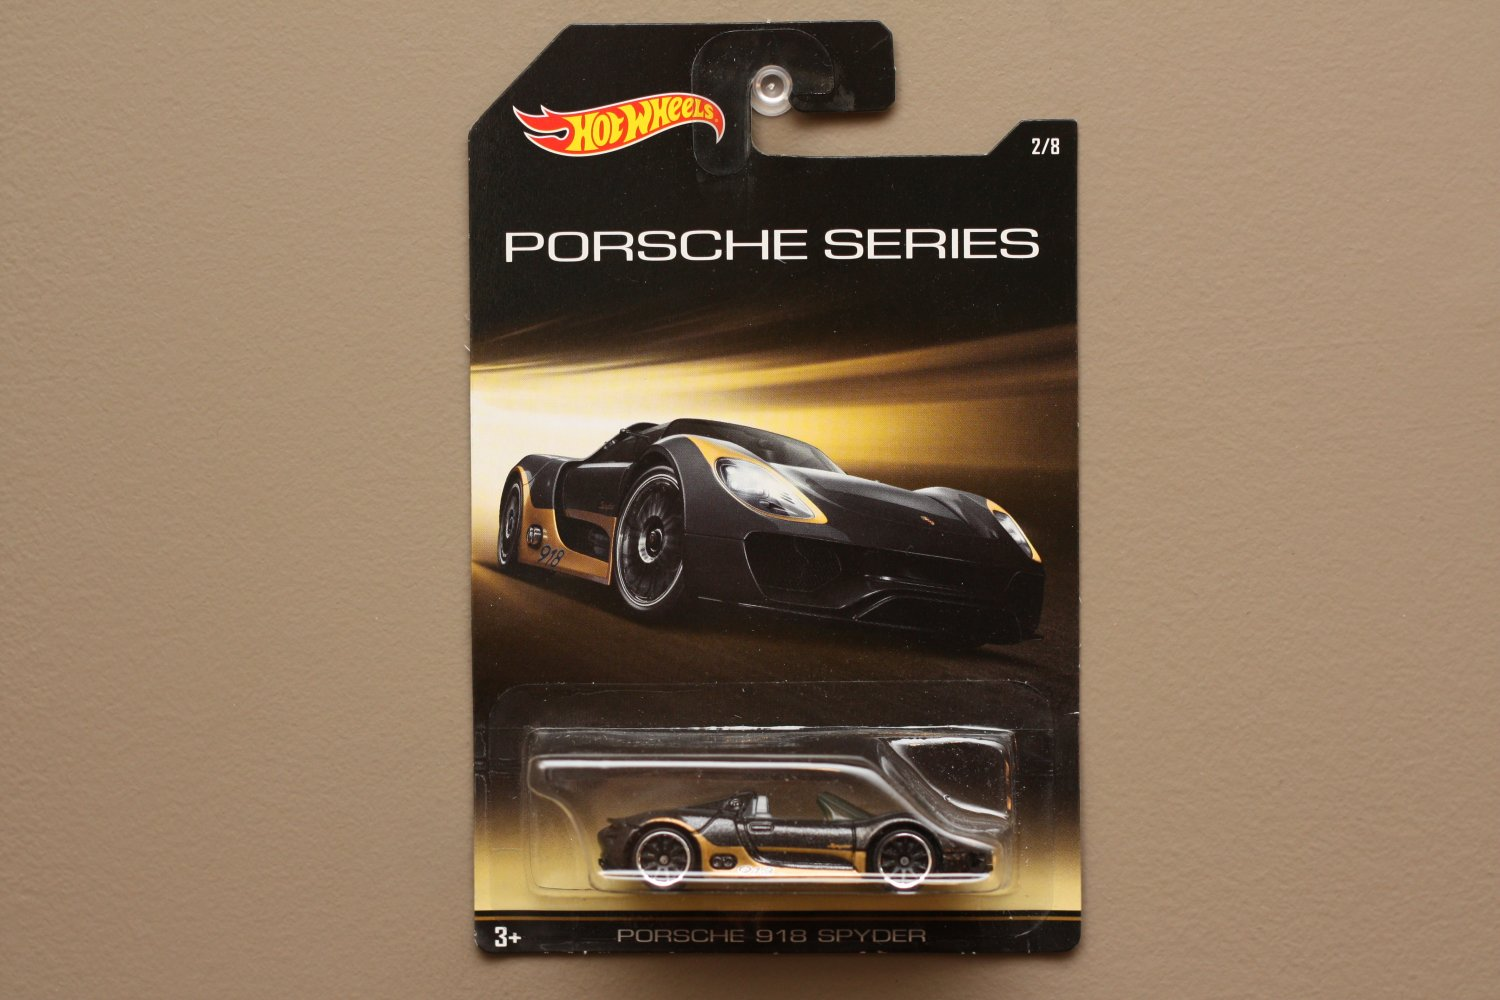 Hot Wheels 2015 Porsche Series Porsche 918 Spyder (black)